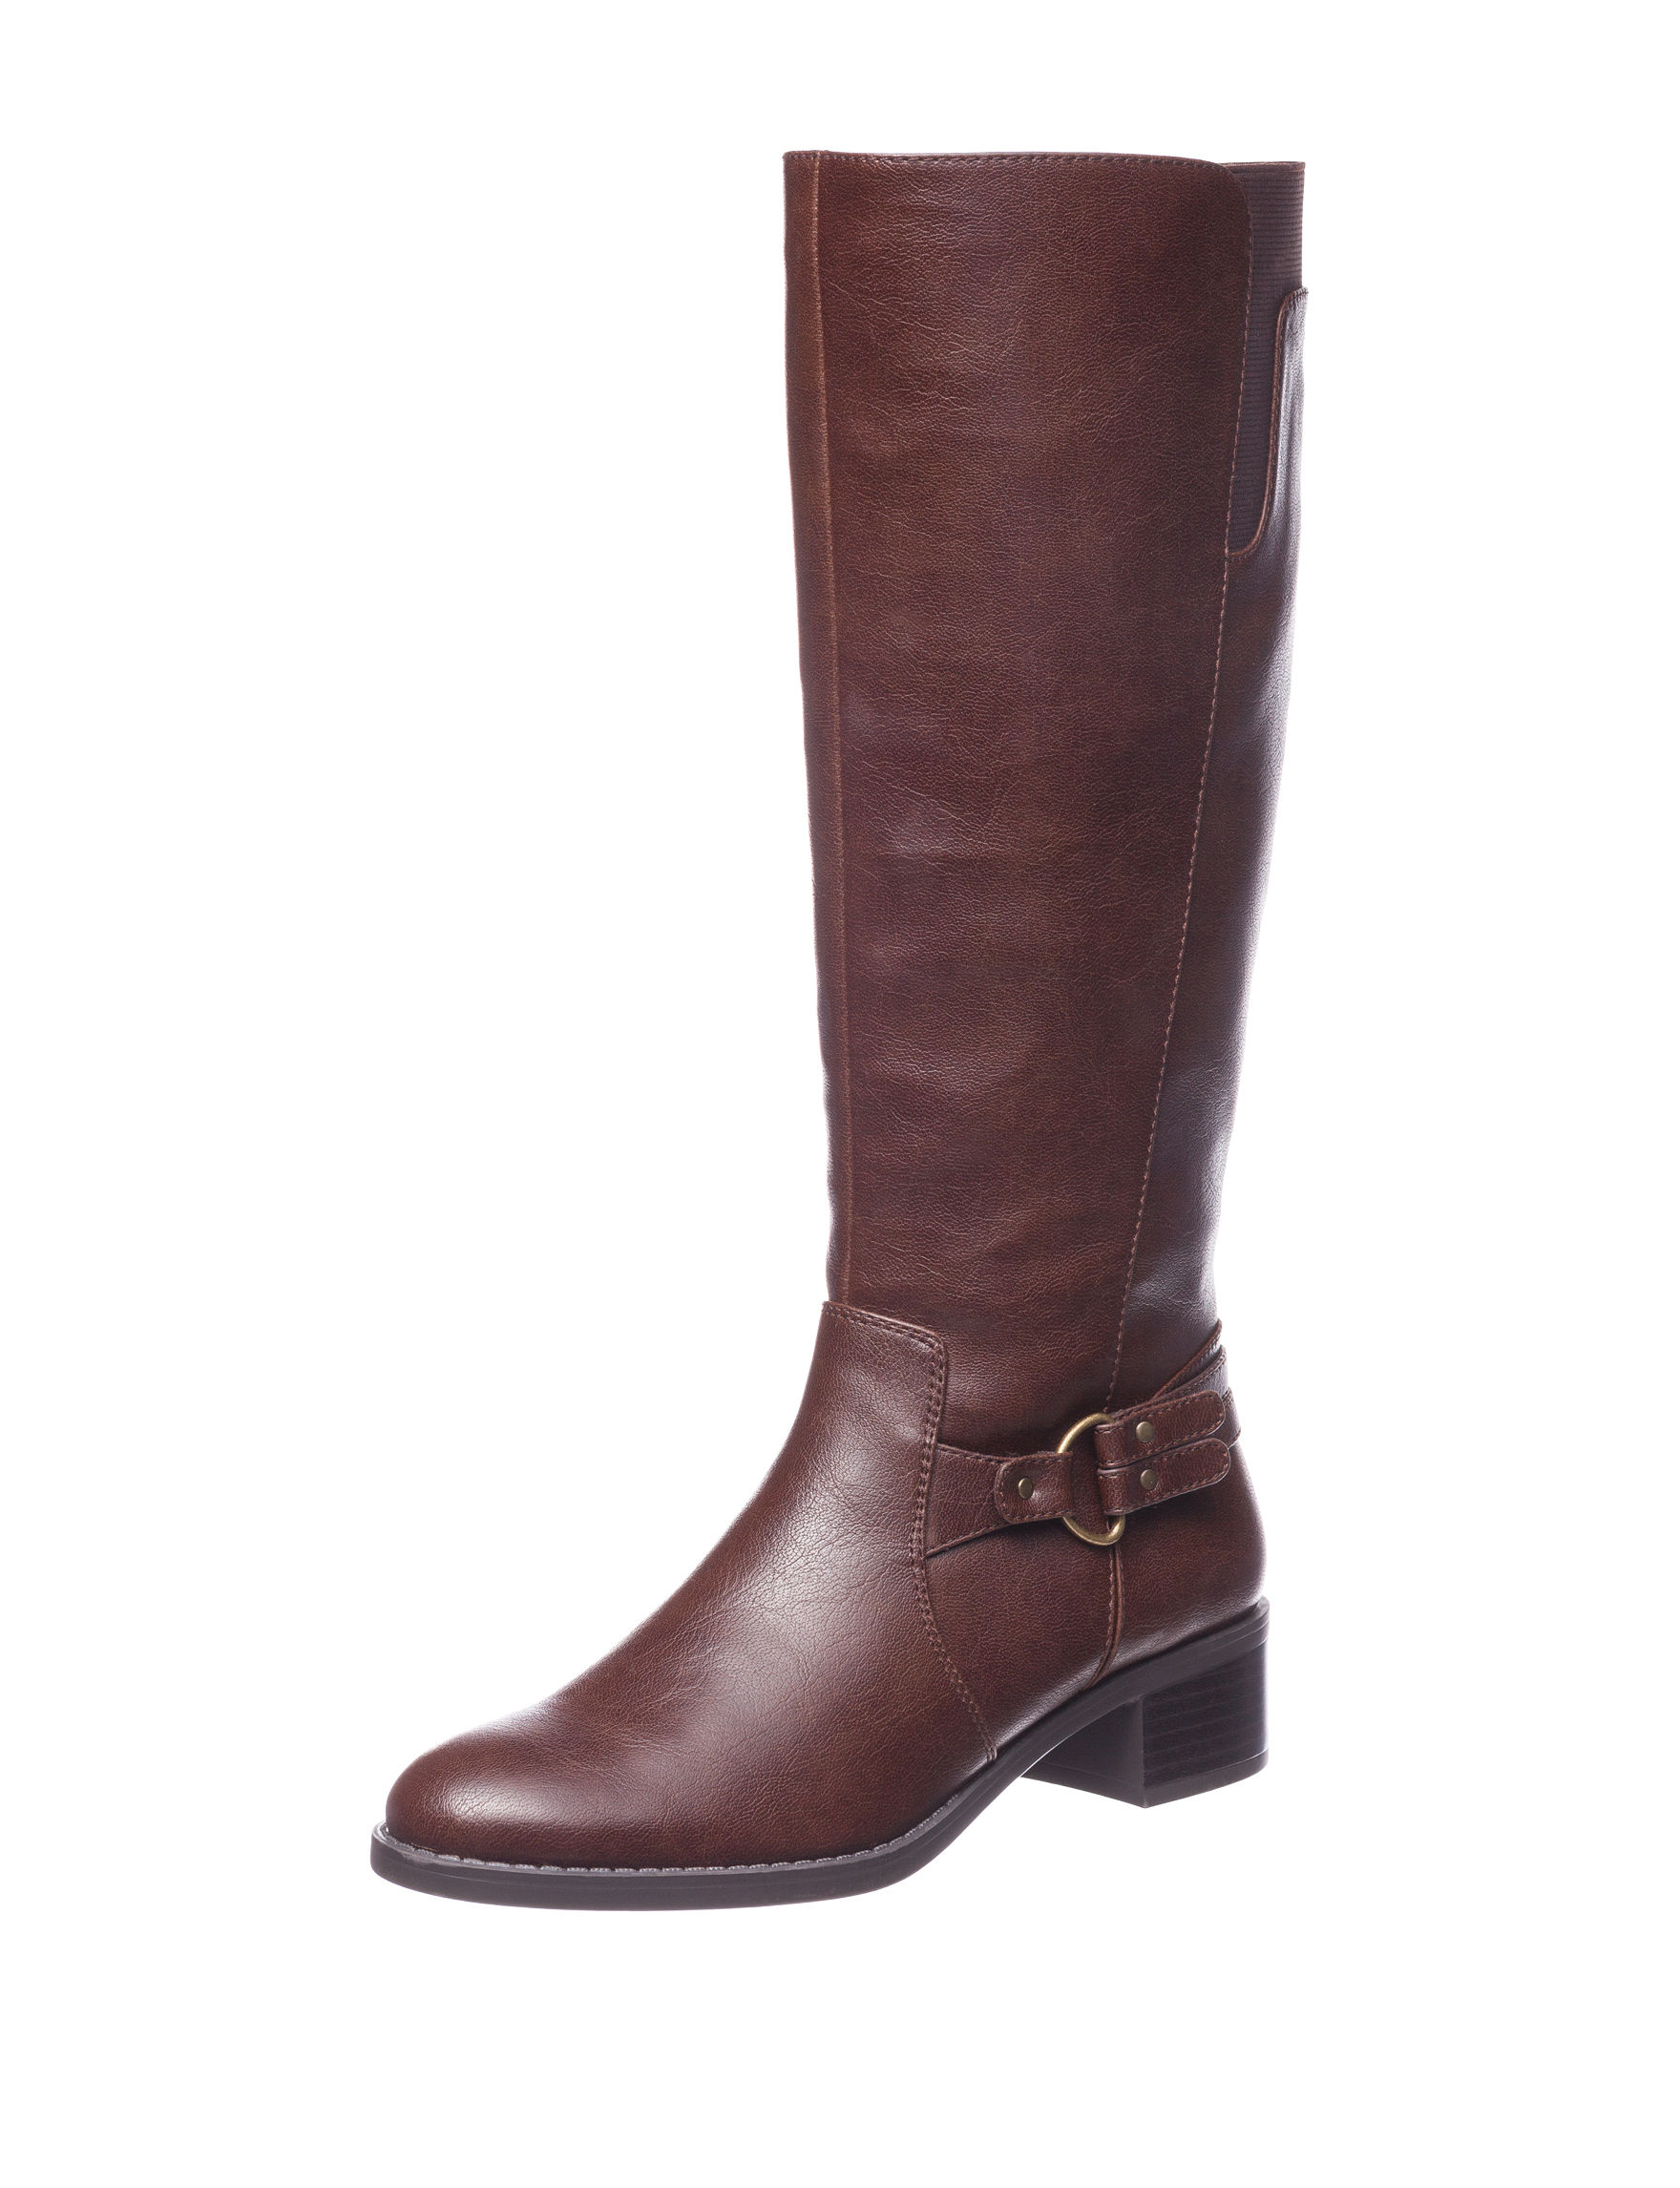 Easy Street Brown Riding Boots